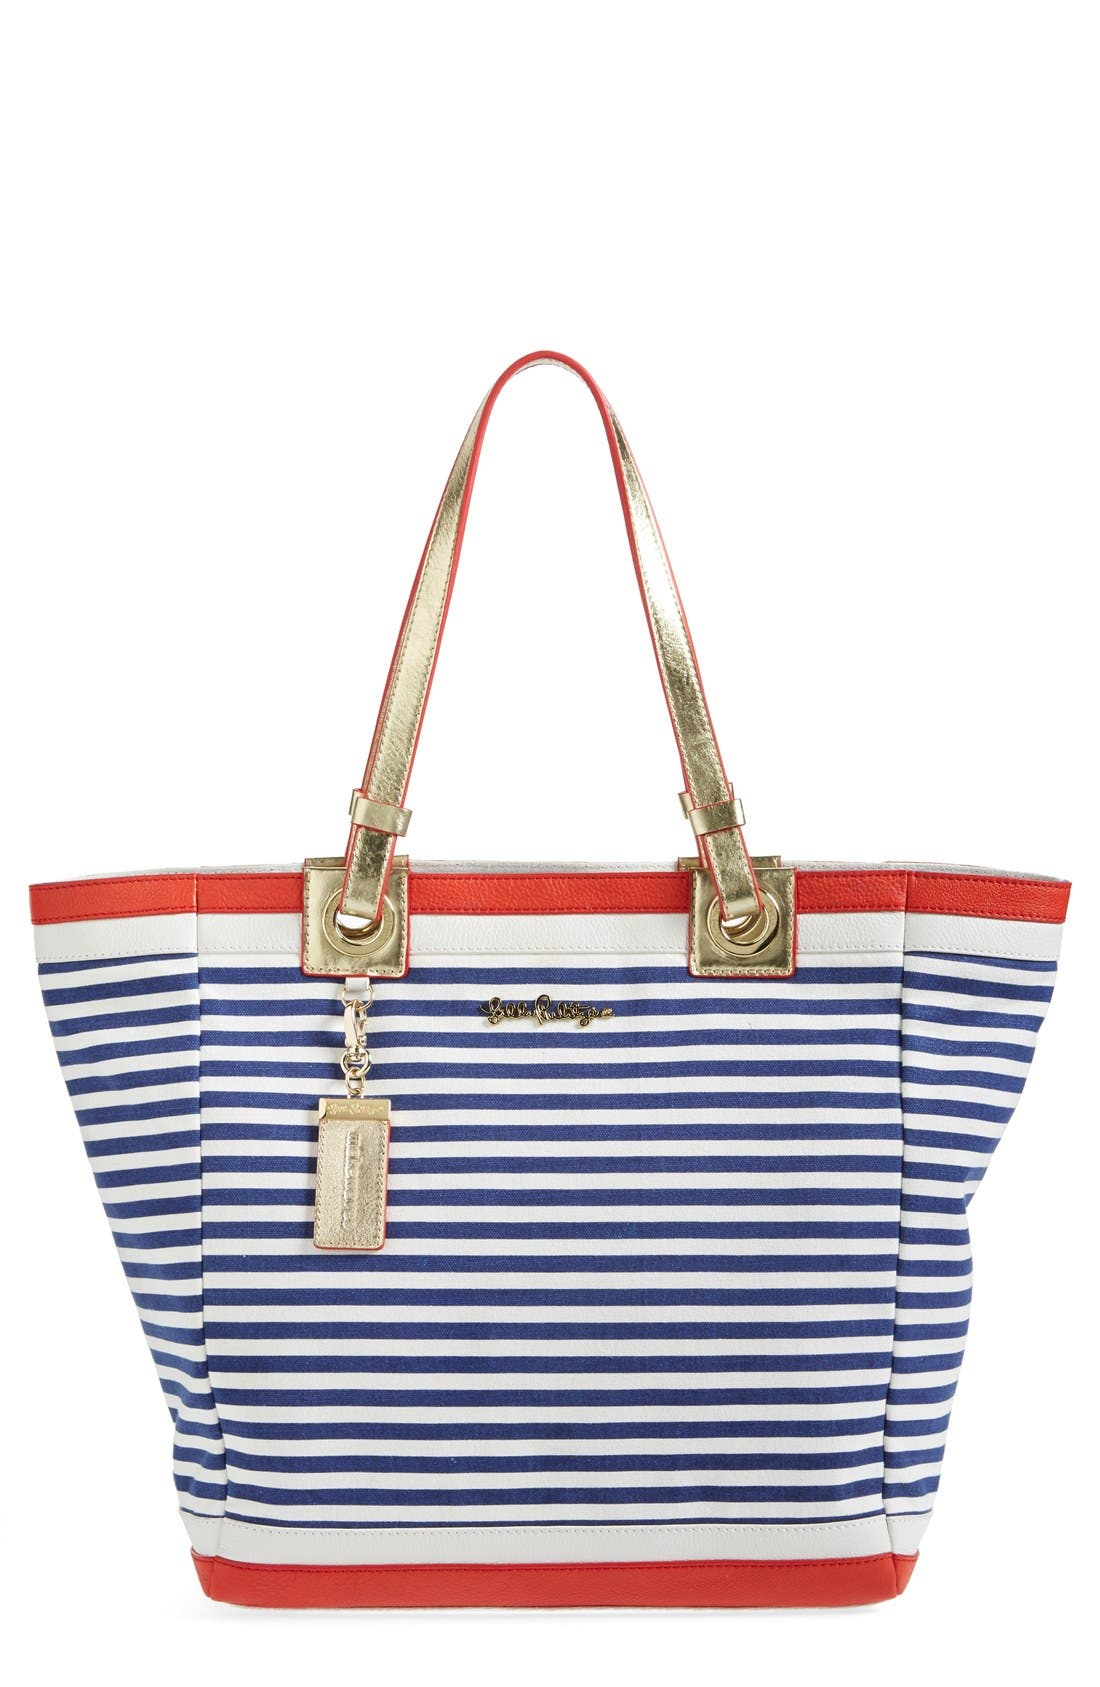 Alternate Image 1 Selected - Lilly Pulitzer® 'Cabana' Tote